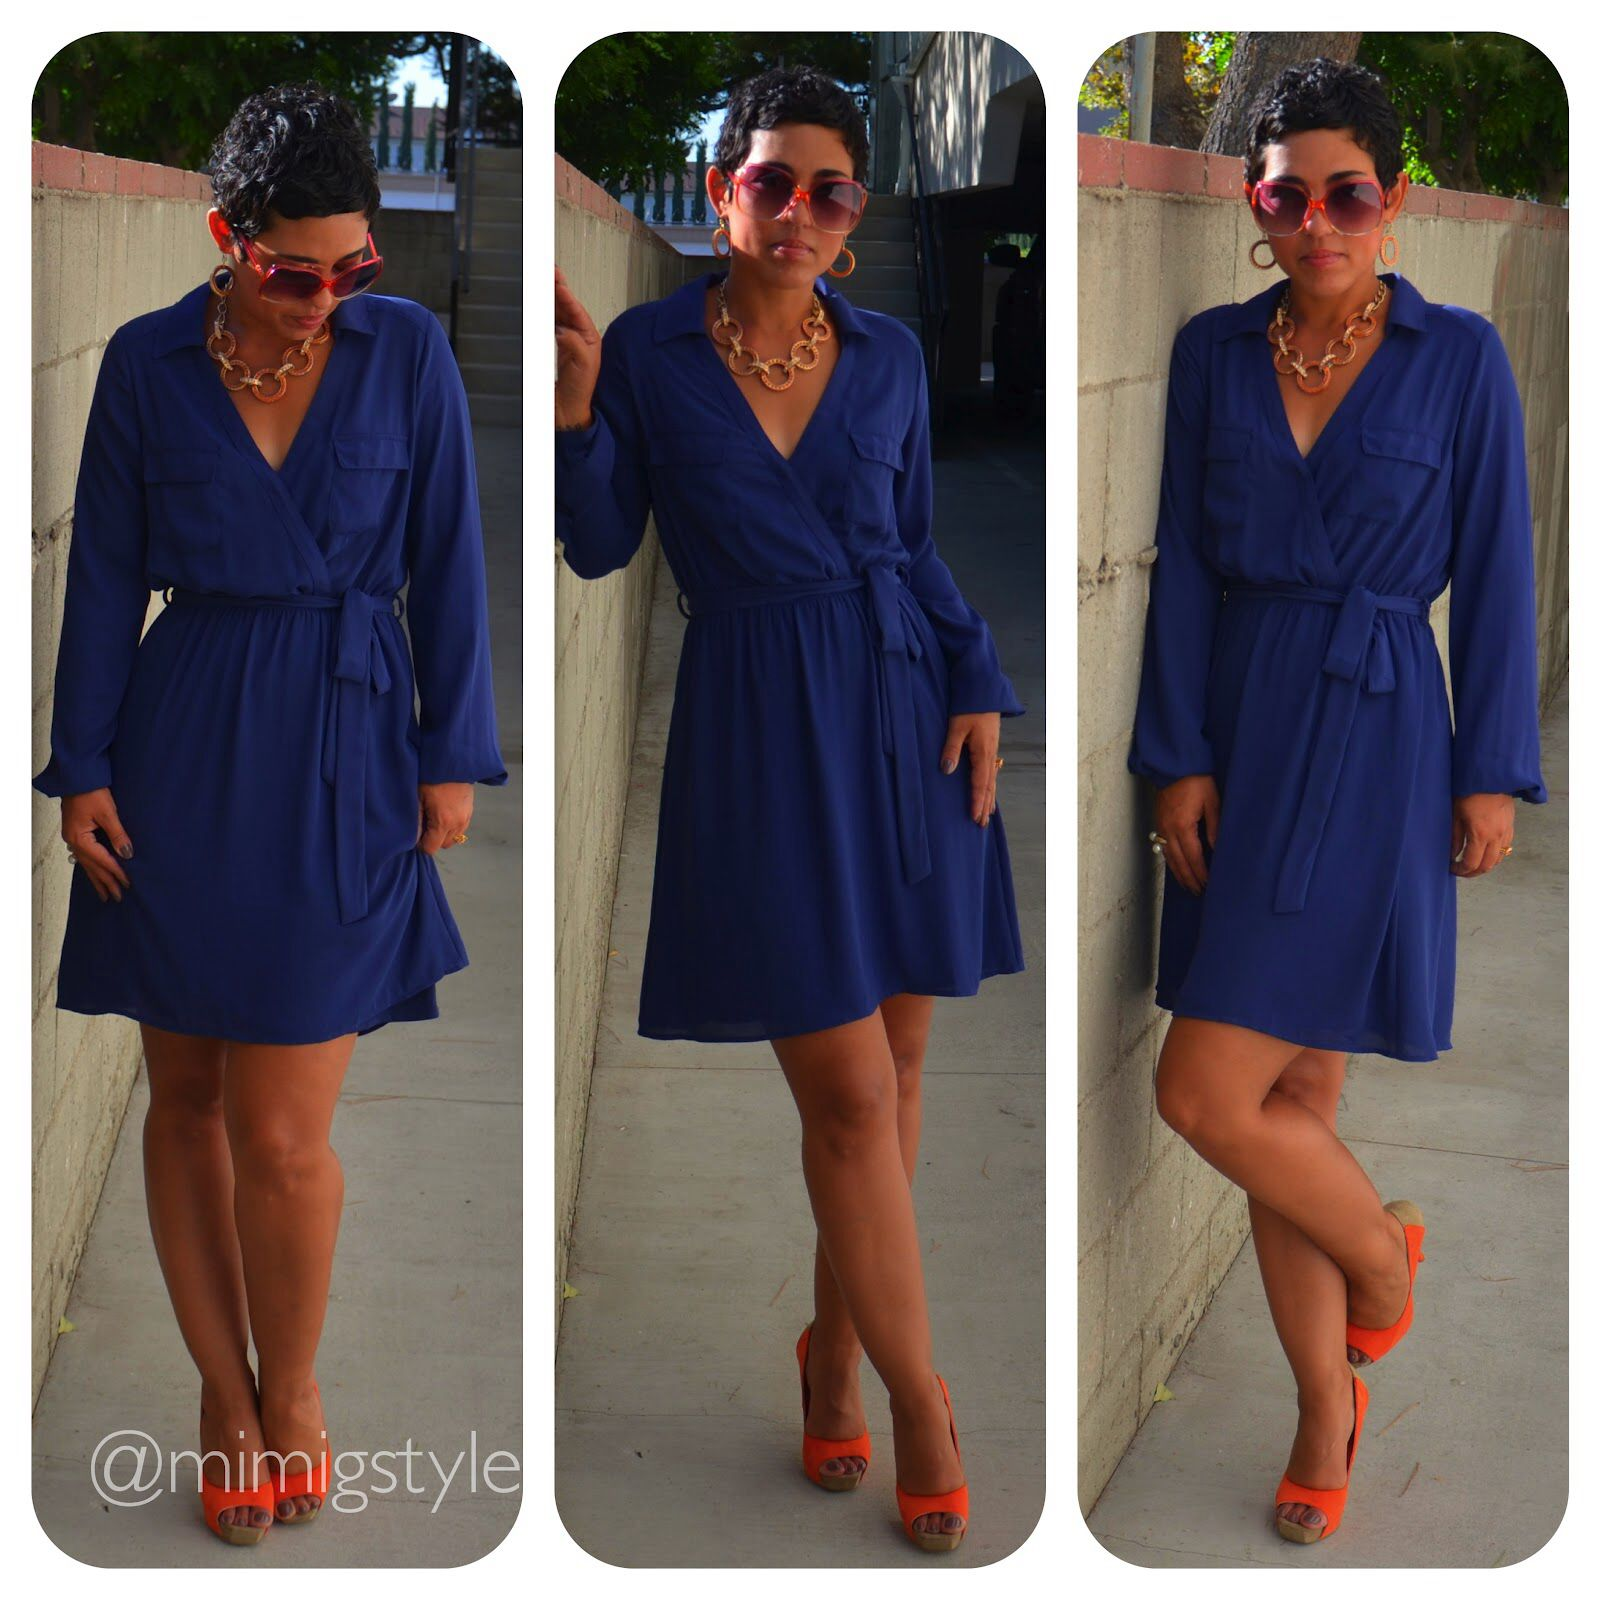 Love the pop of color with the shoes. Navy dress with orange